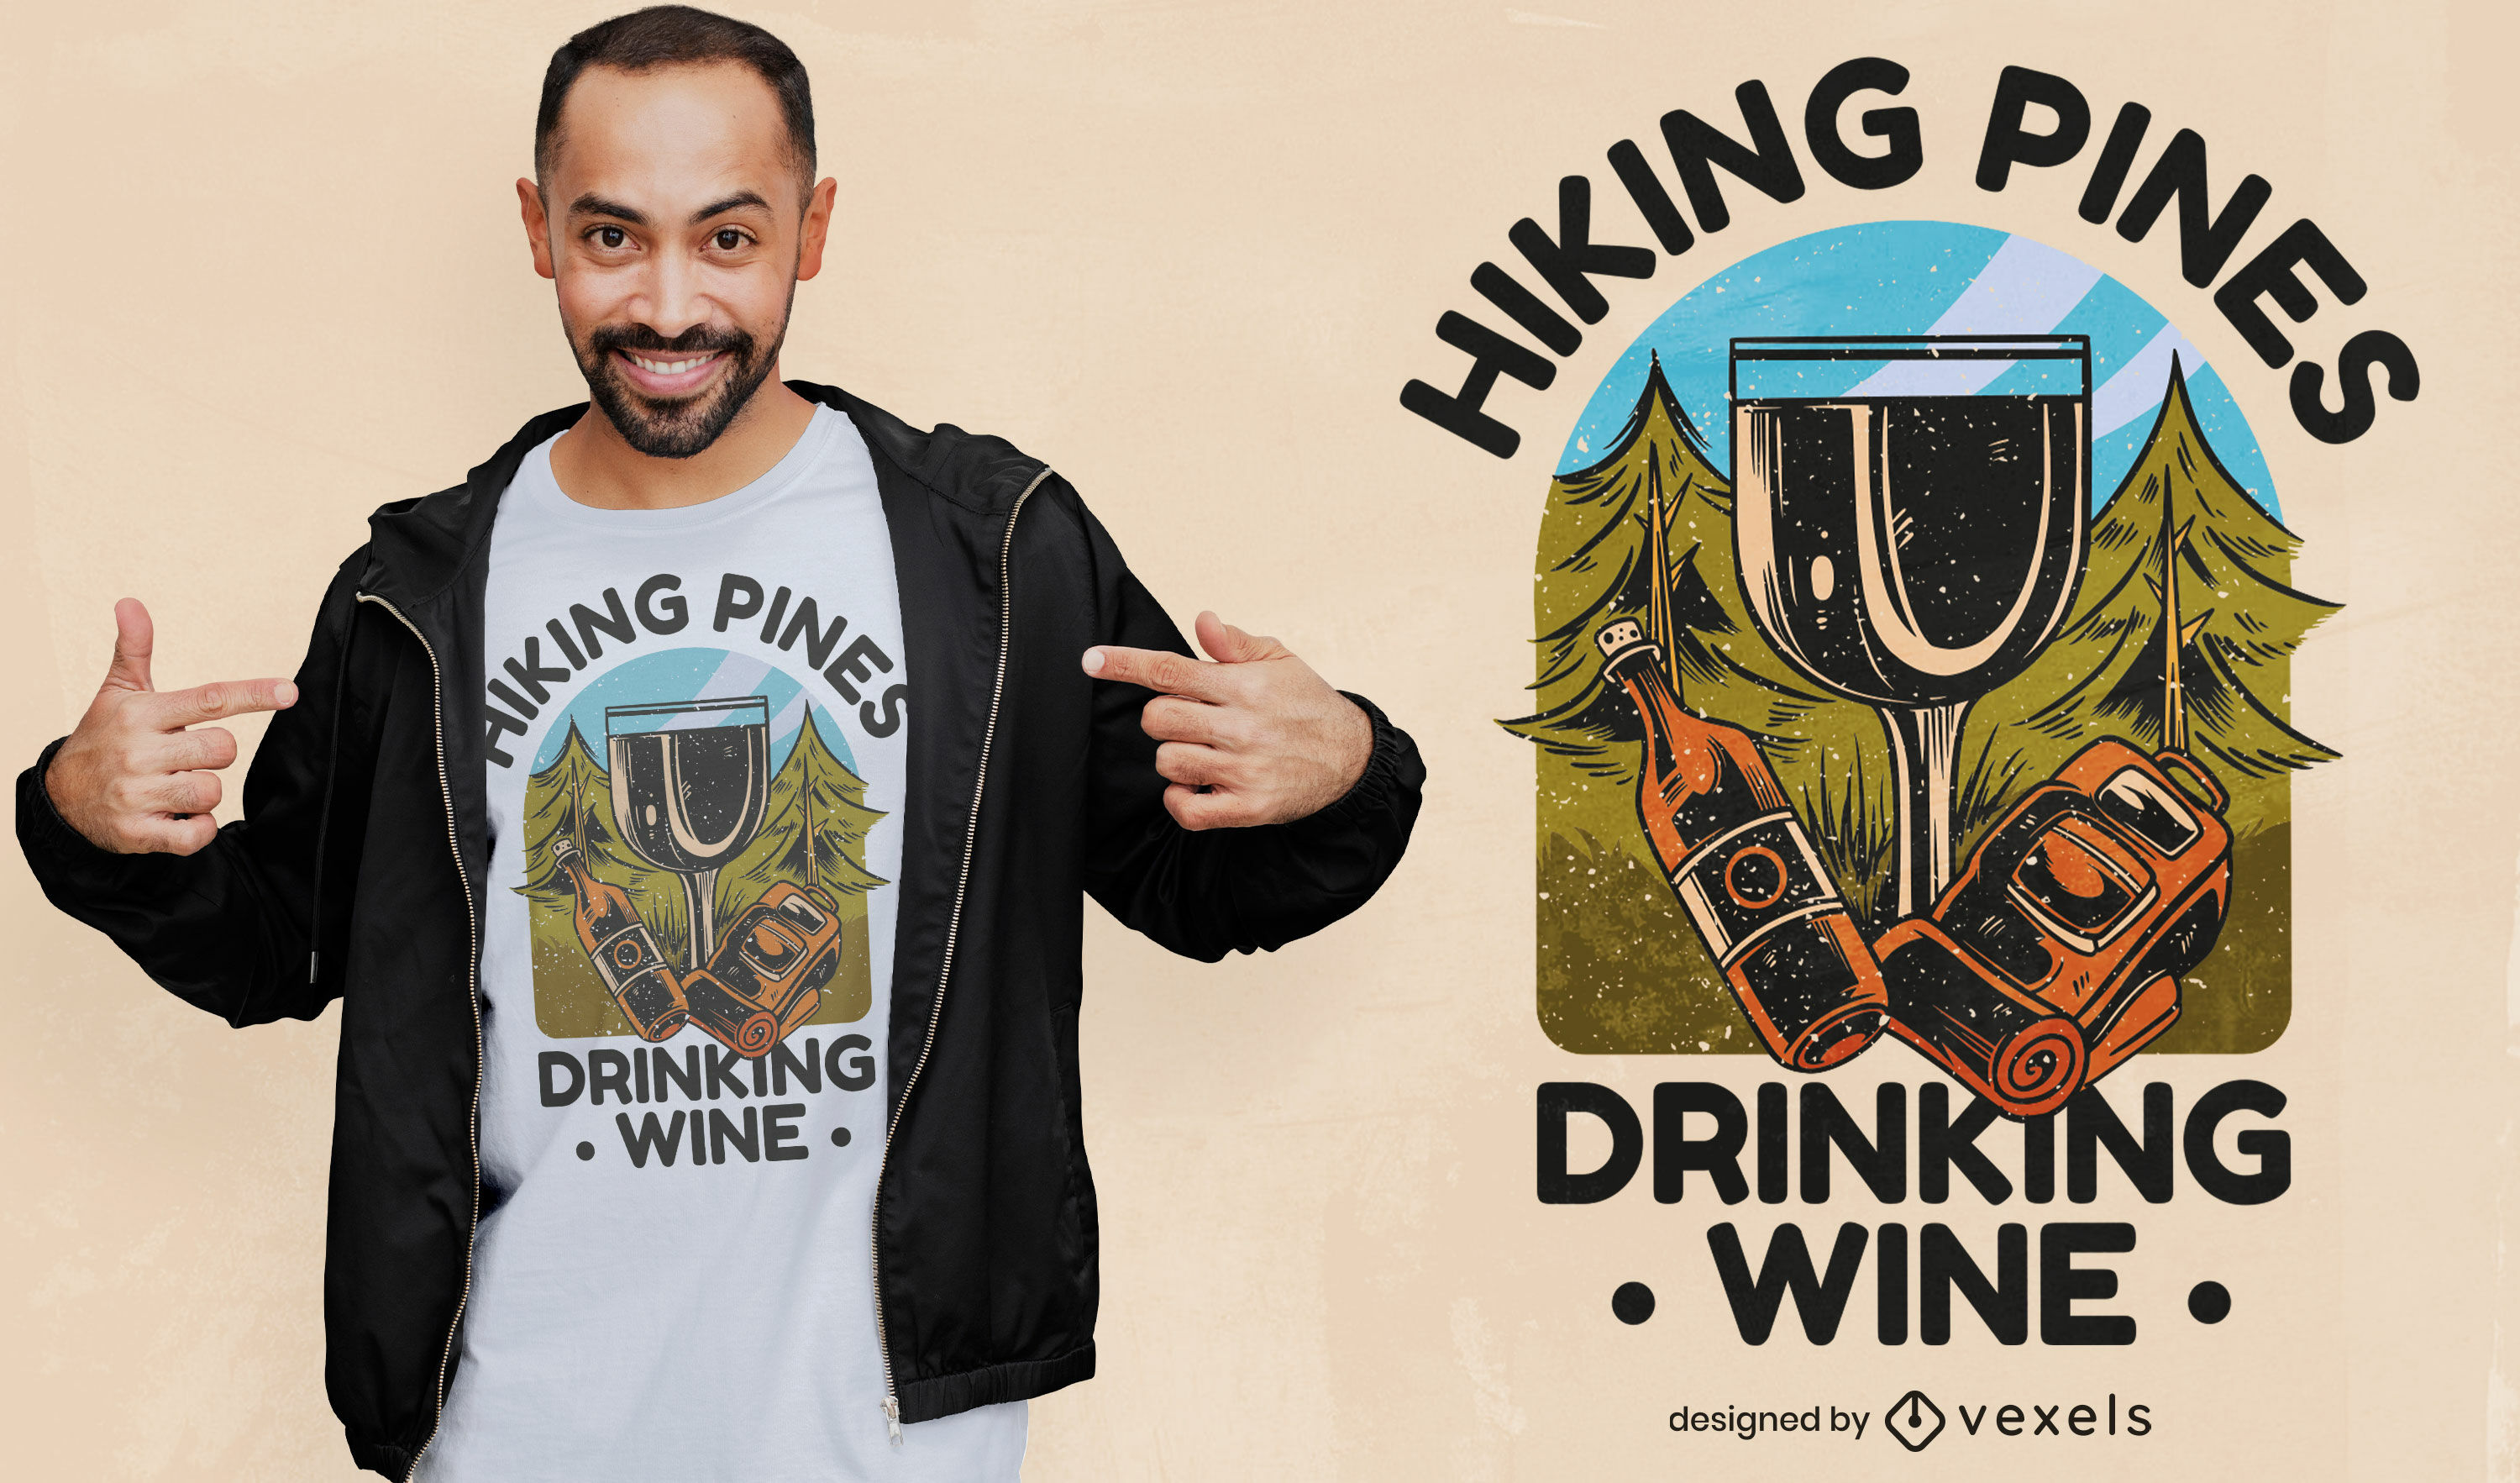 Hiking and drinking wine t-shirt design